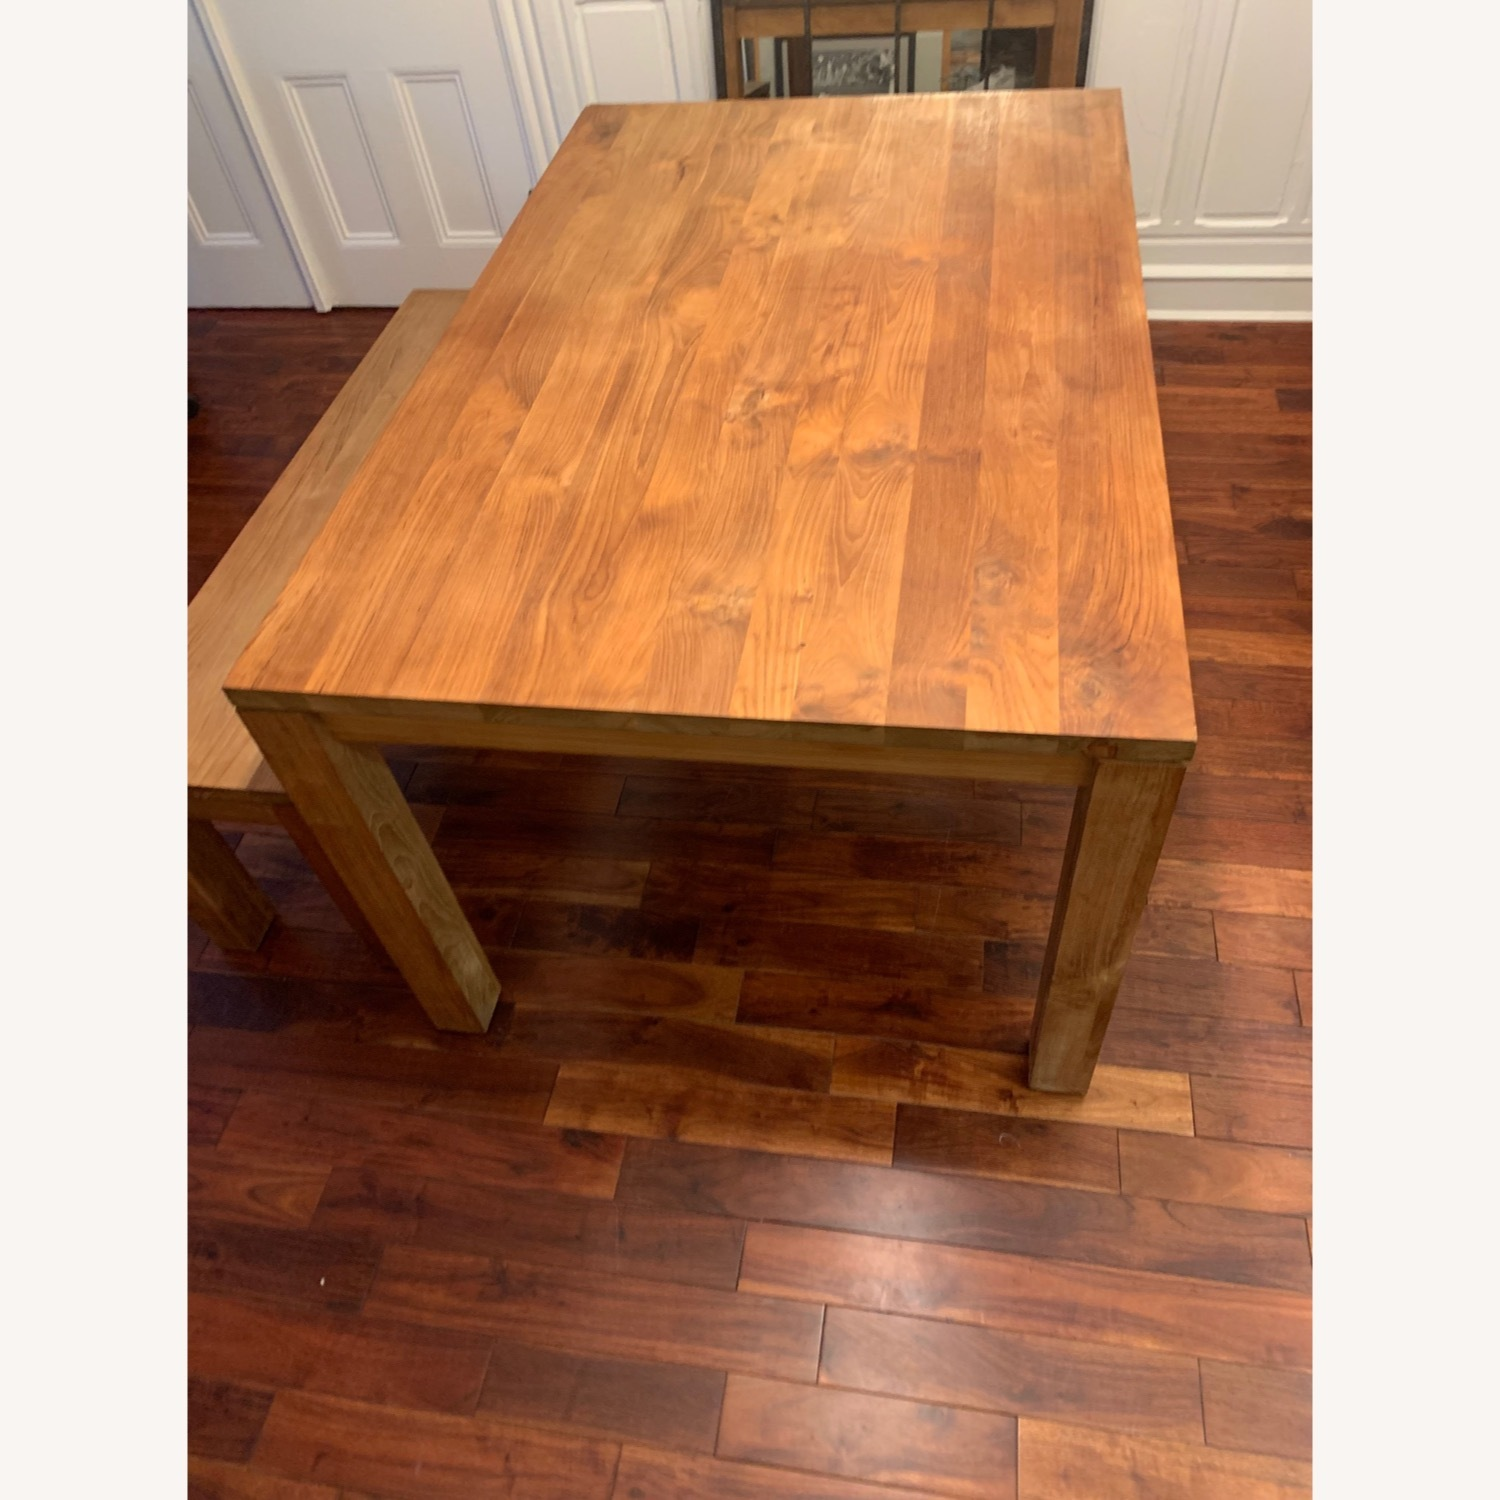 Crate & Barrel Pacifica Dining Table - image-9